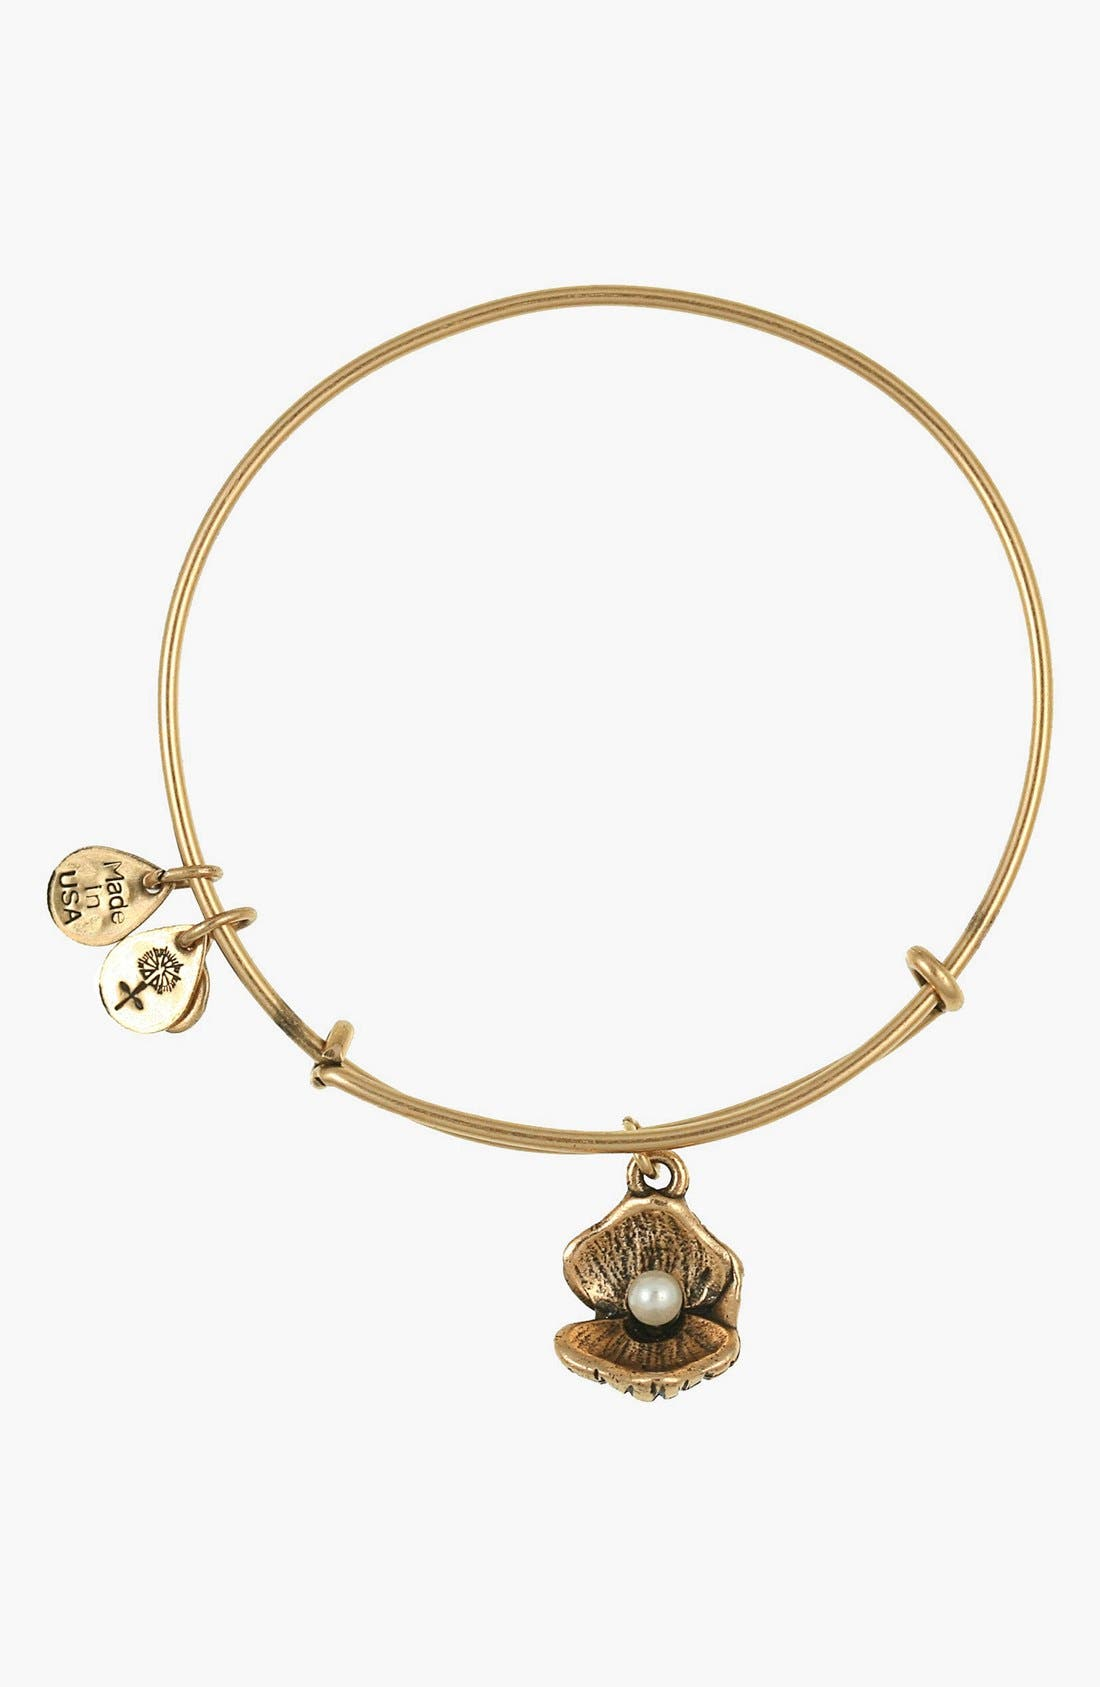 Main Image - Alex and Ani 'Oyster' Charm Expandable Bangle